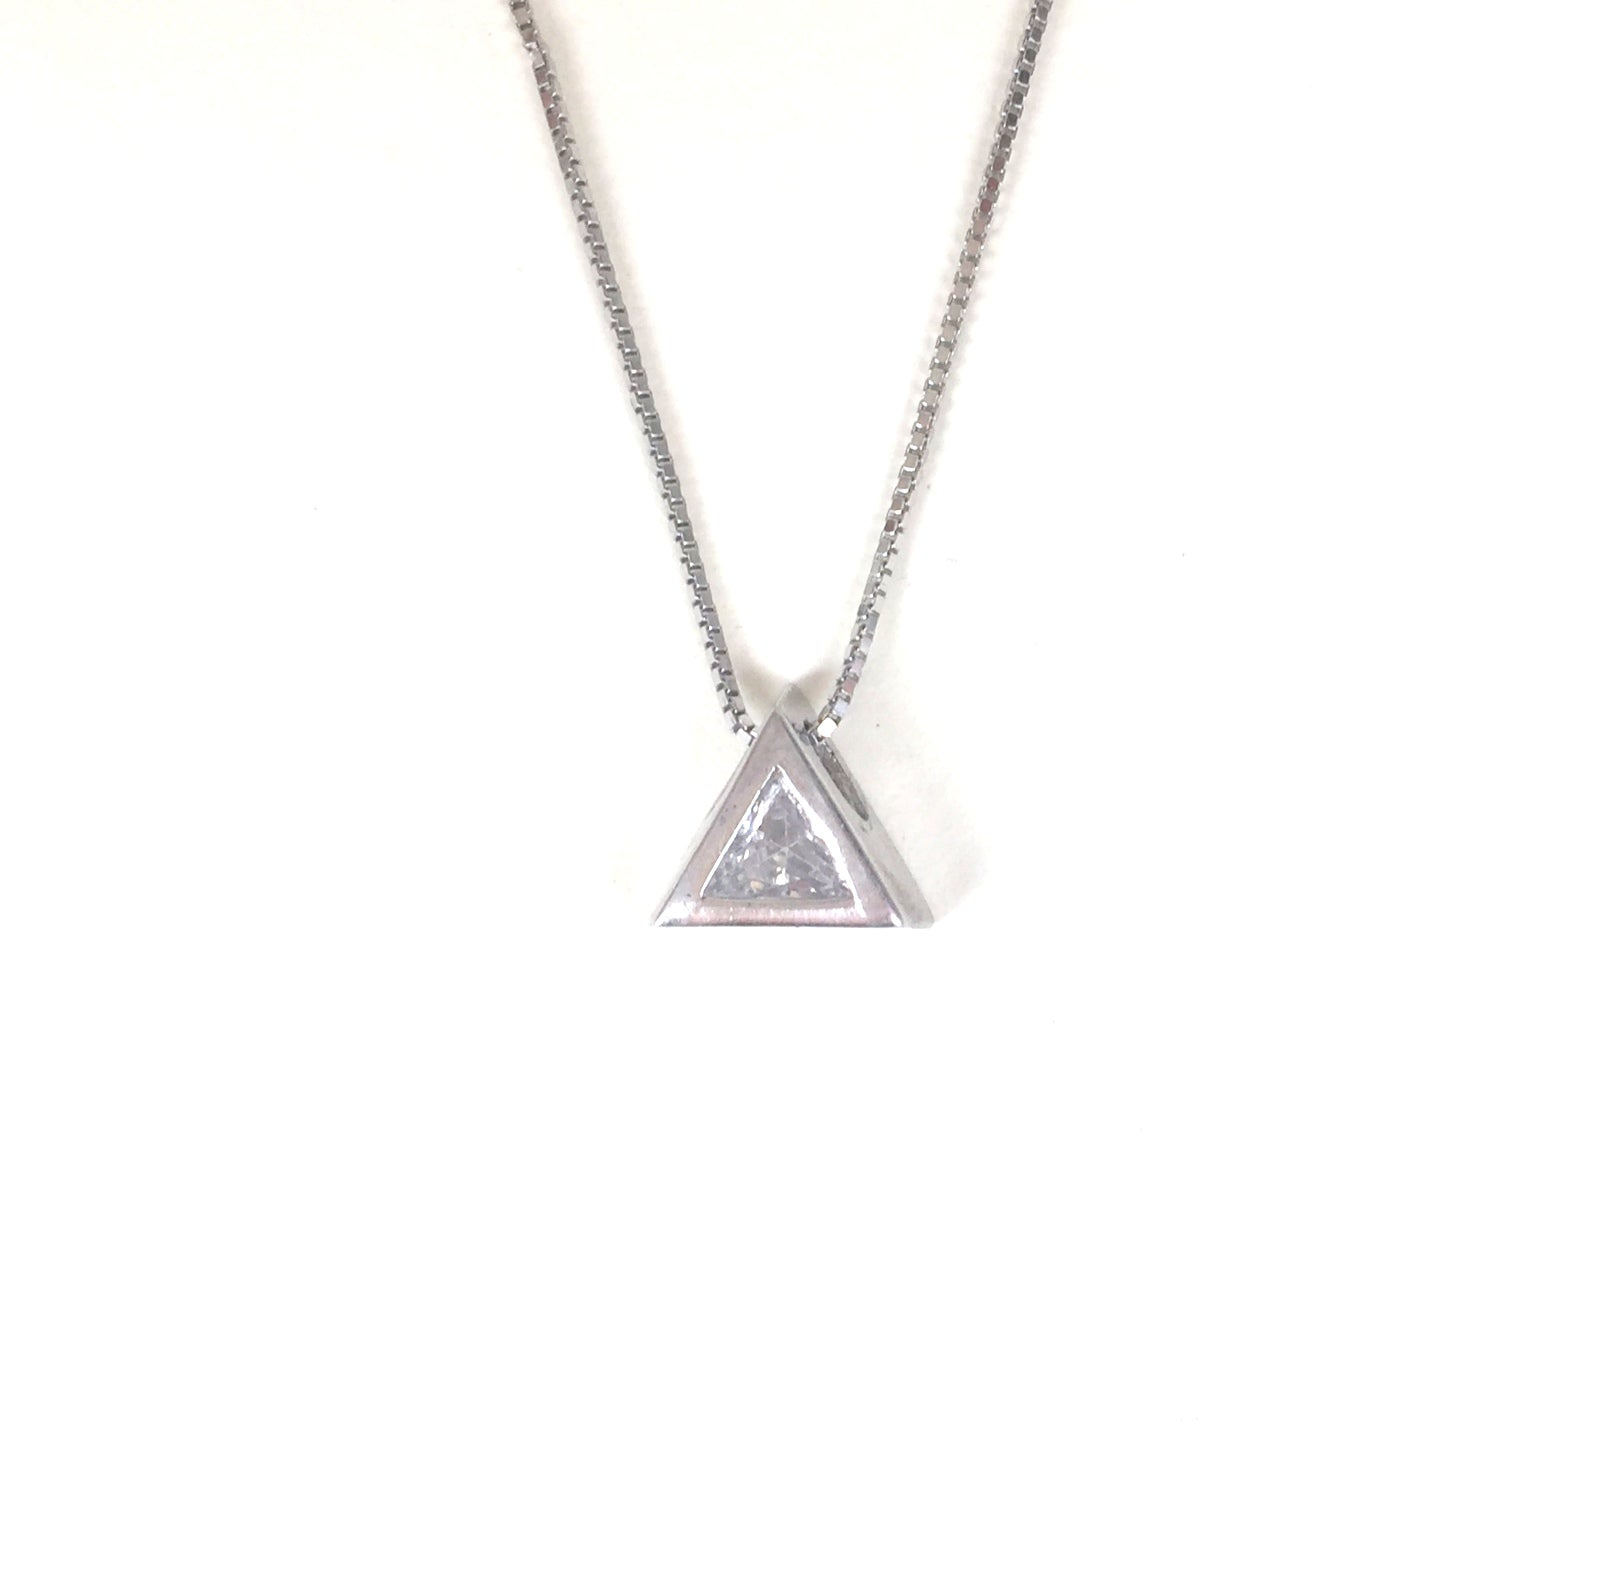 SMALL TRIANGLE STERLING SILVER NECKLACE